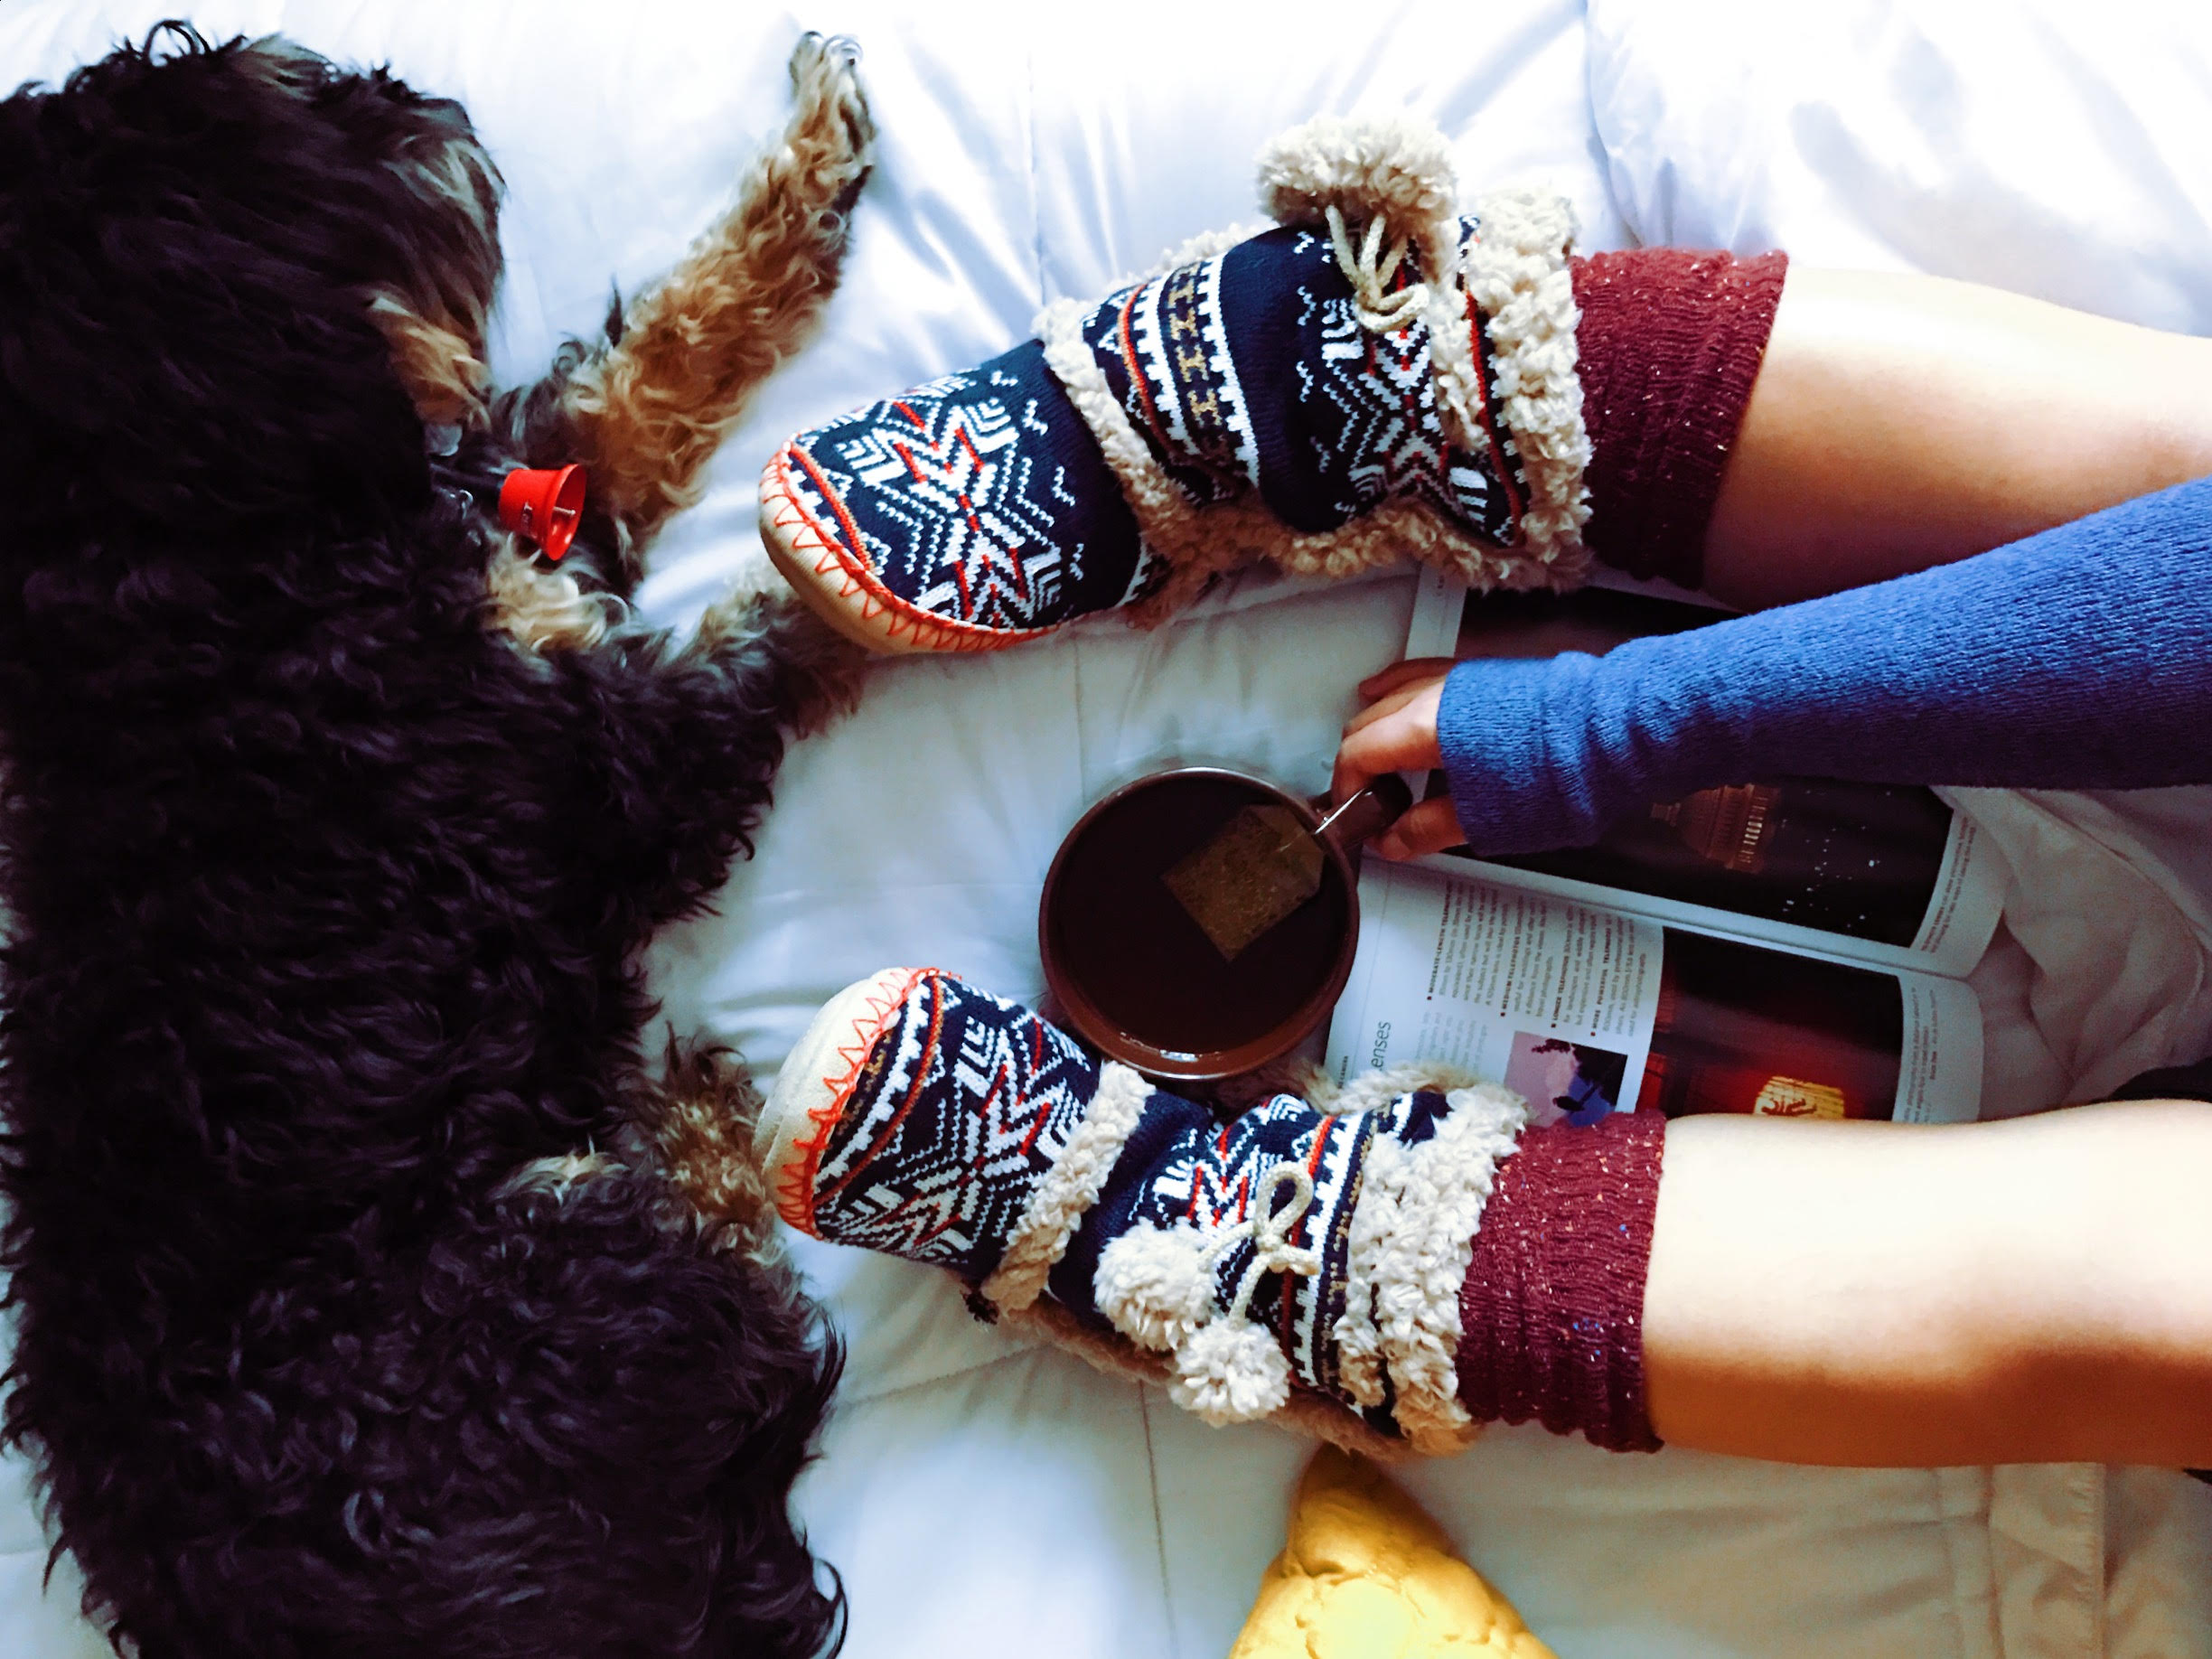 A cozy scene on a bed with a dog and warm slippers.